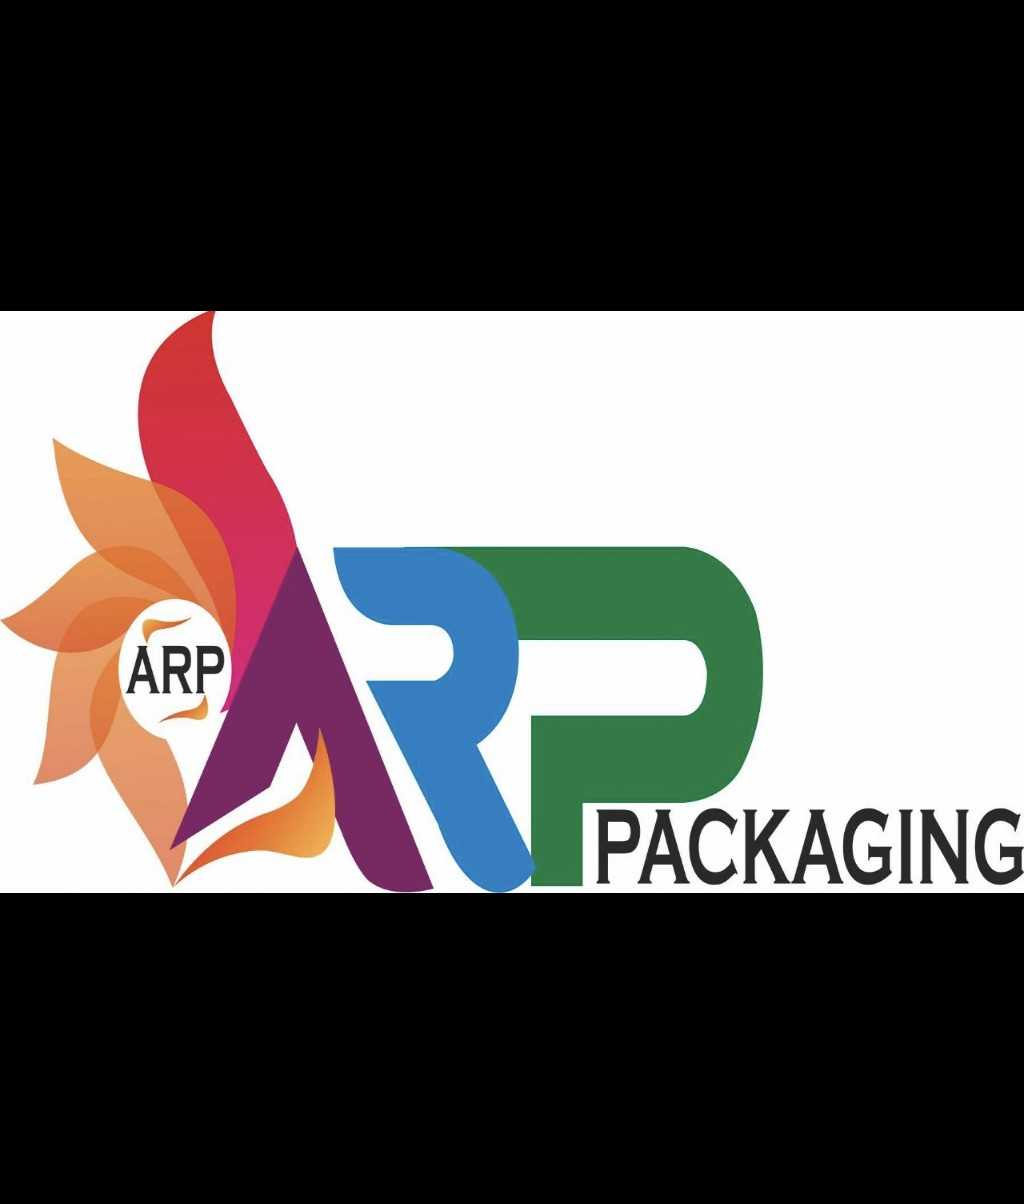 ARP WOVEN SACK PRIVATE LIMITED